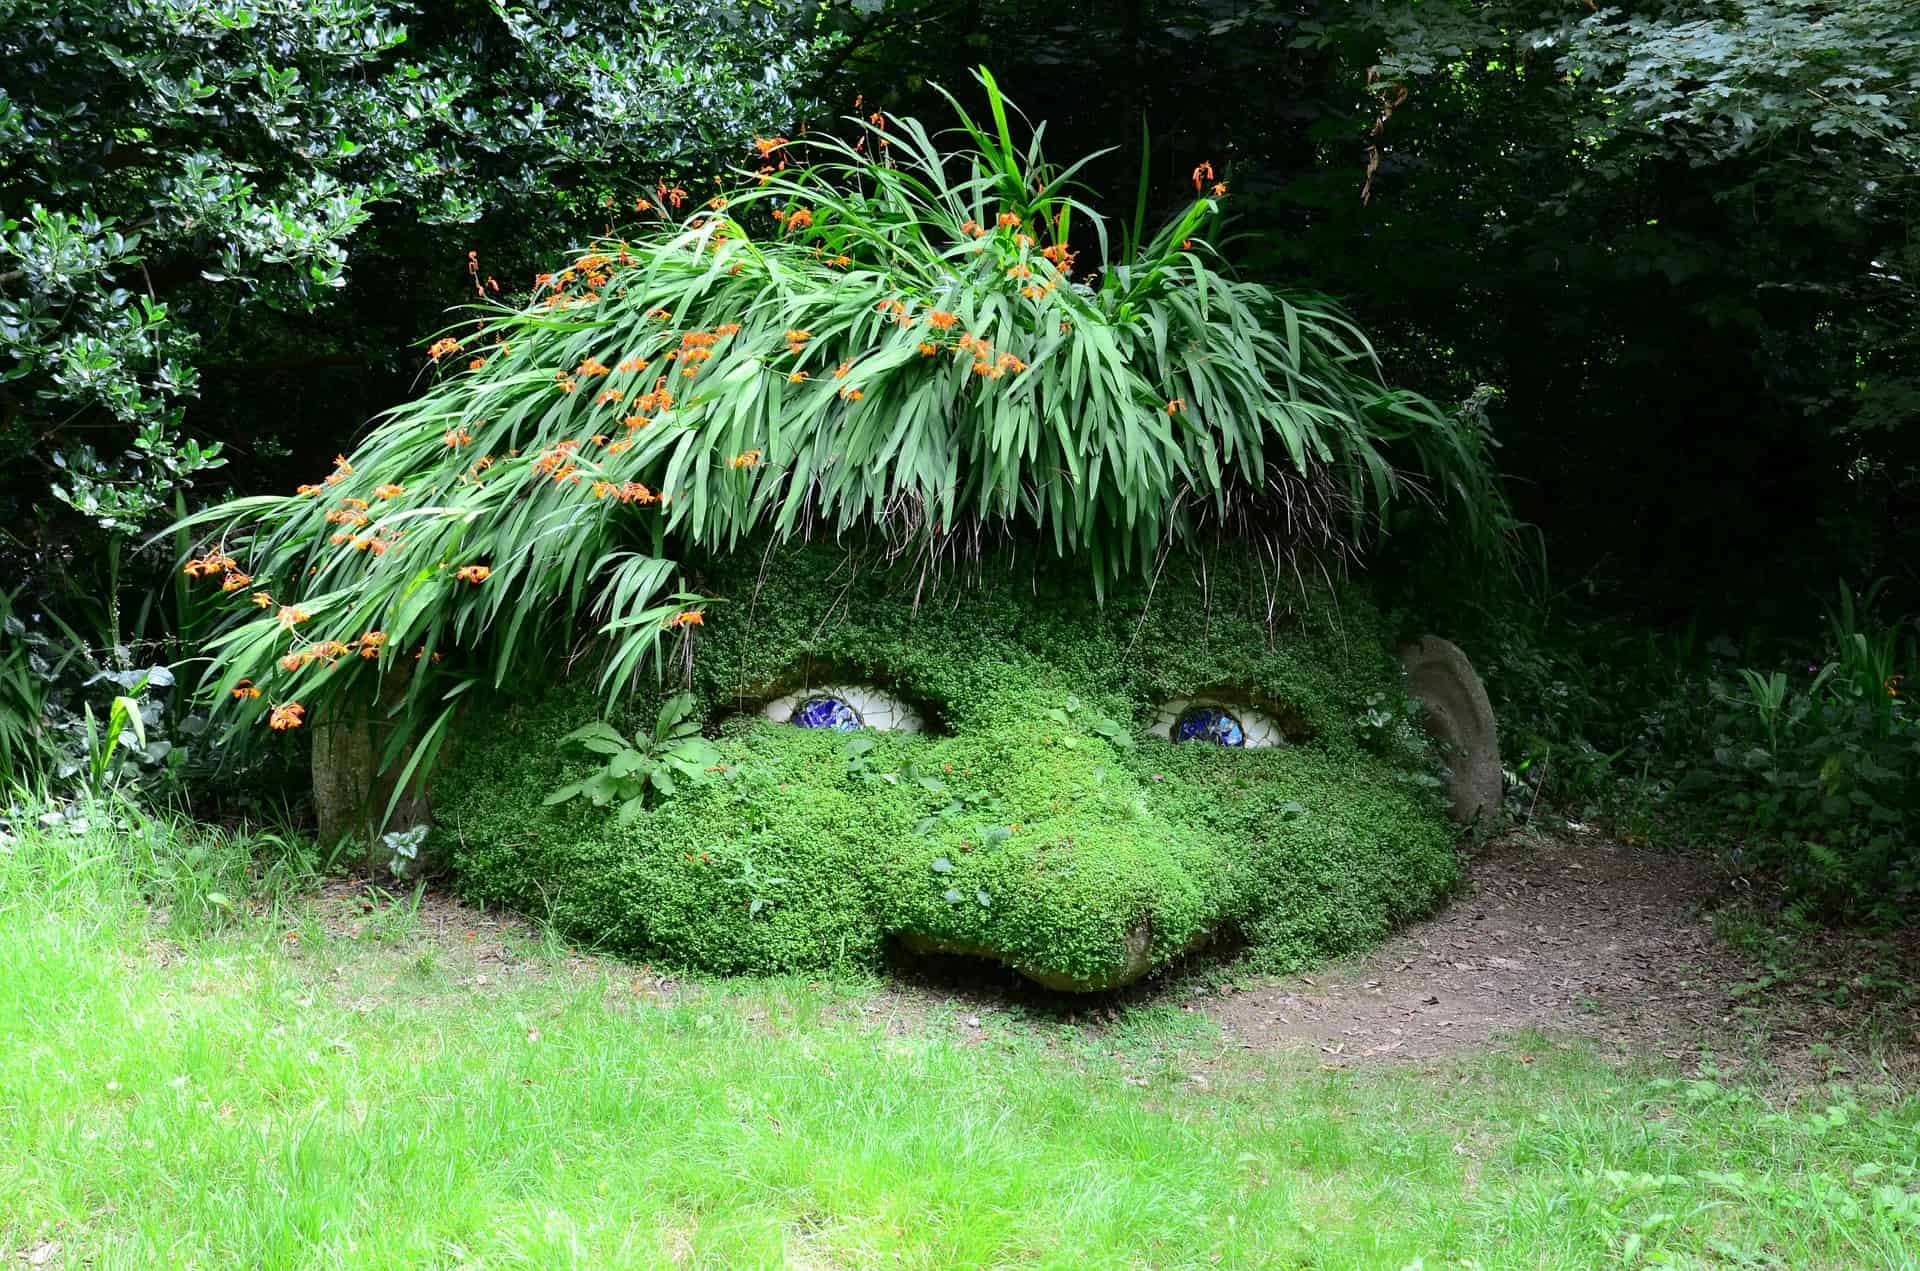 Cornwall - Lost Gardens of Heligan - Gnome in the undergrowth